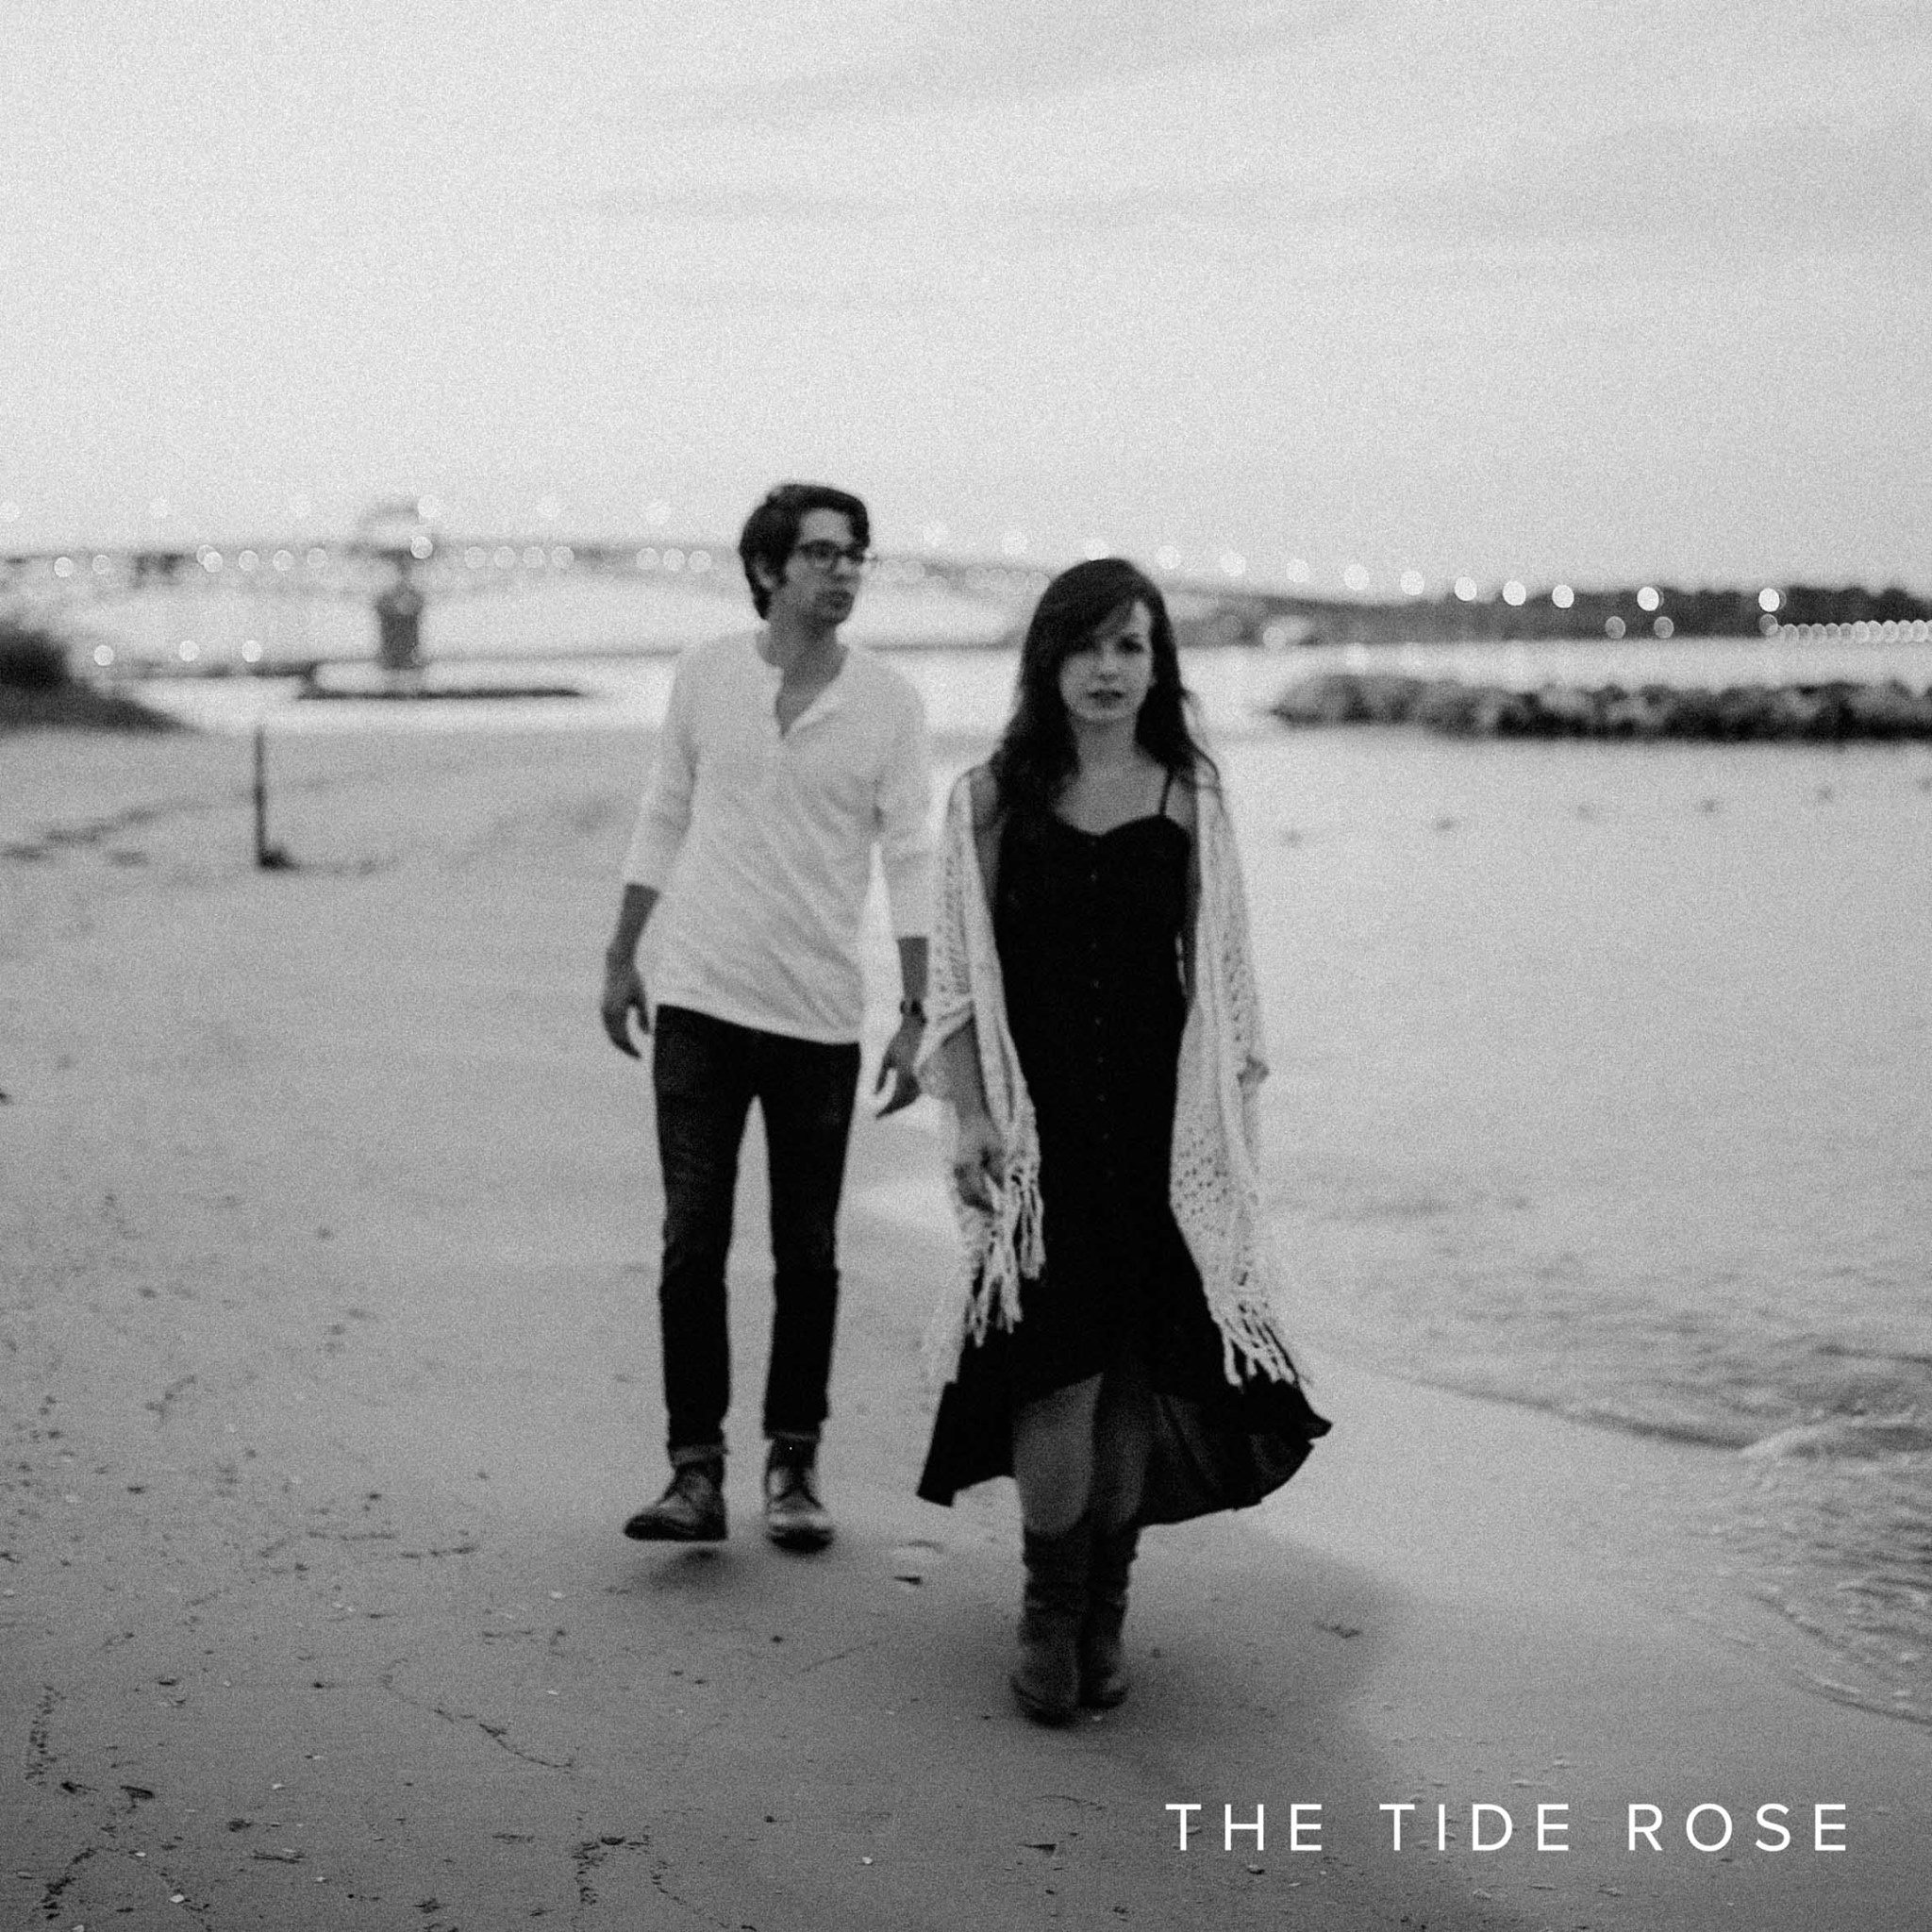 The Tide Rose